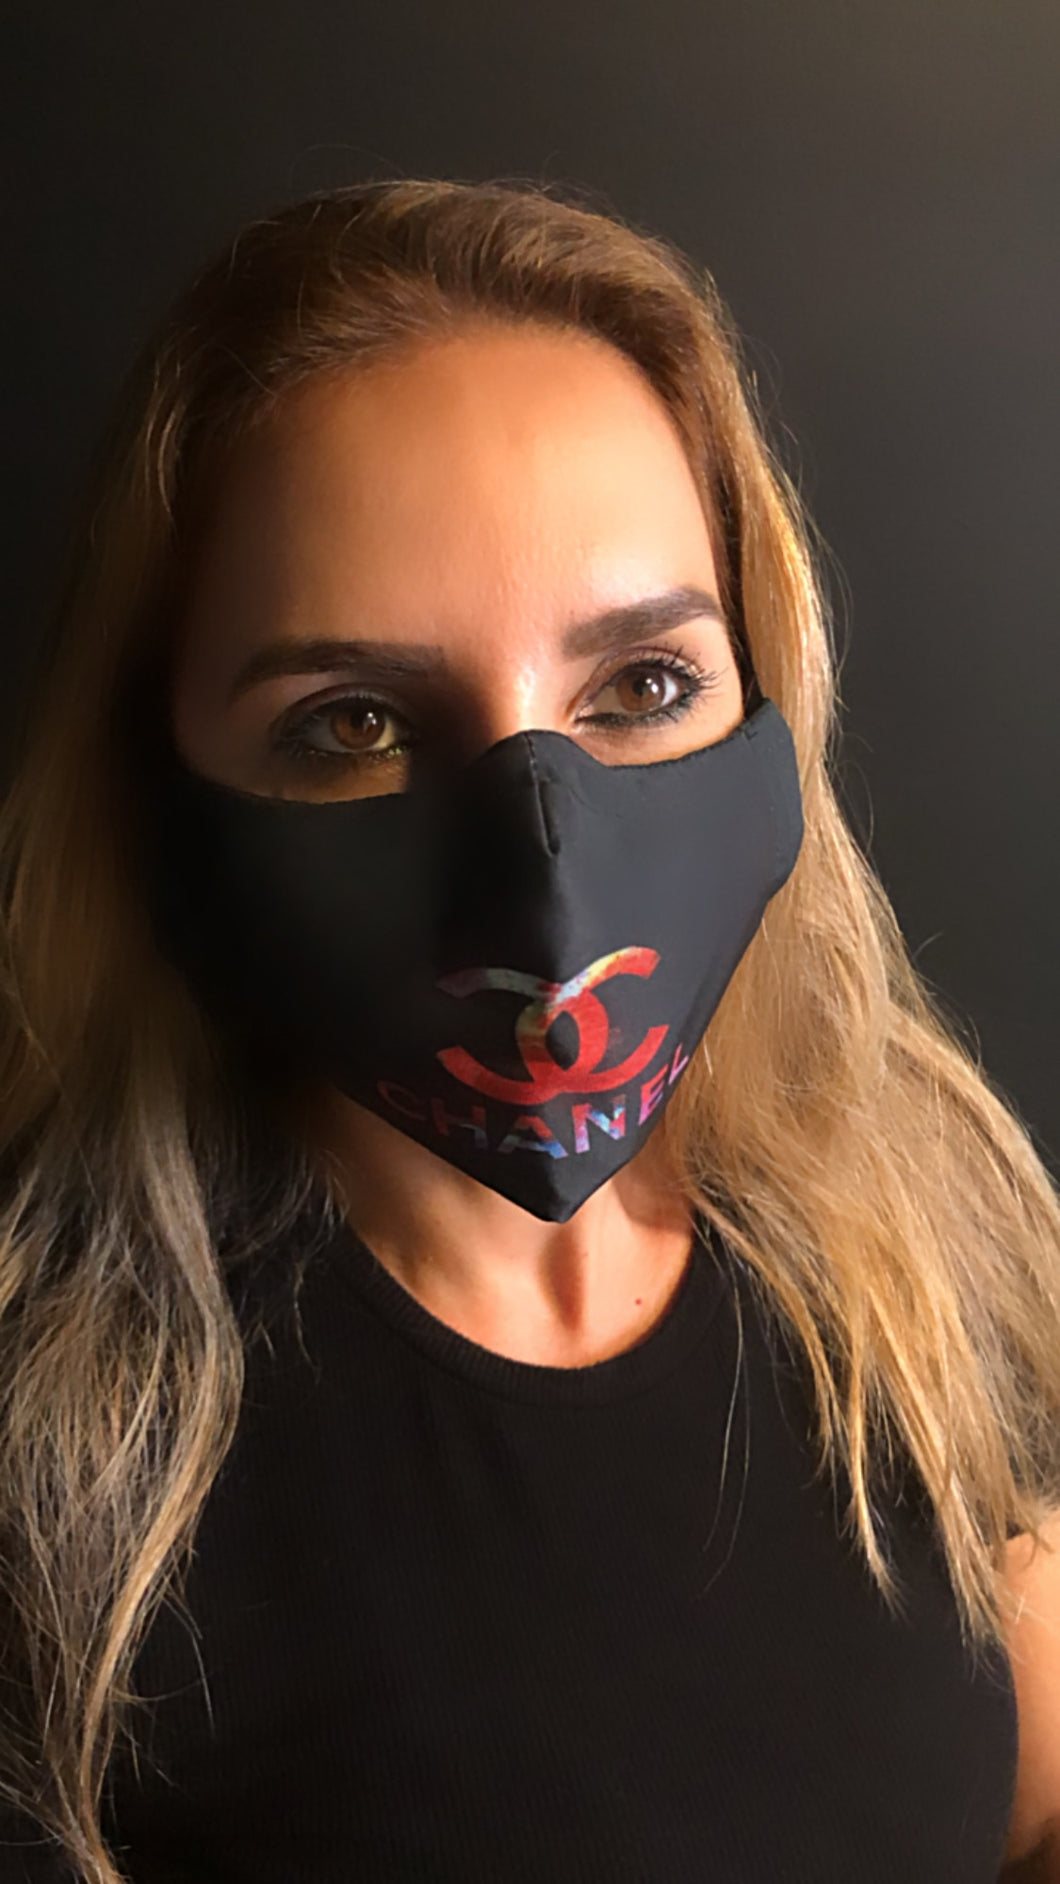 CDesigner Inspired Unisex Face Mask - Unisex / Reusable / Washable